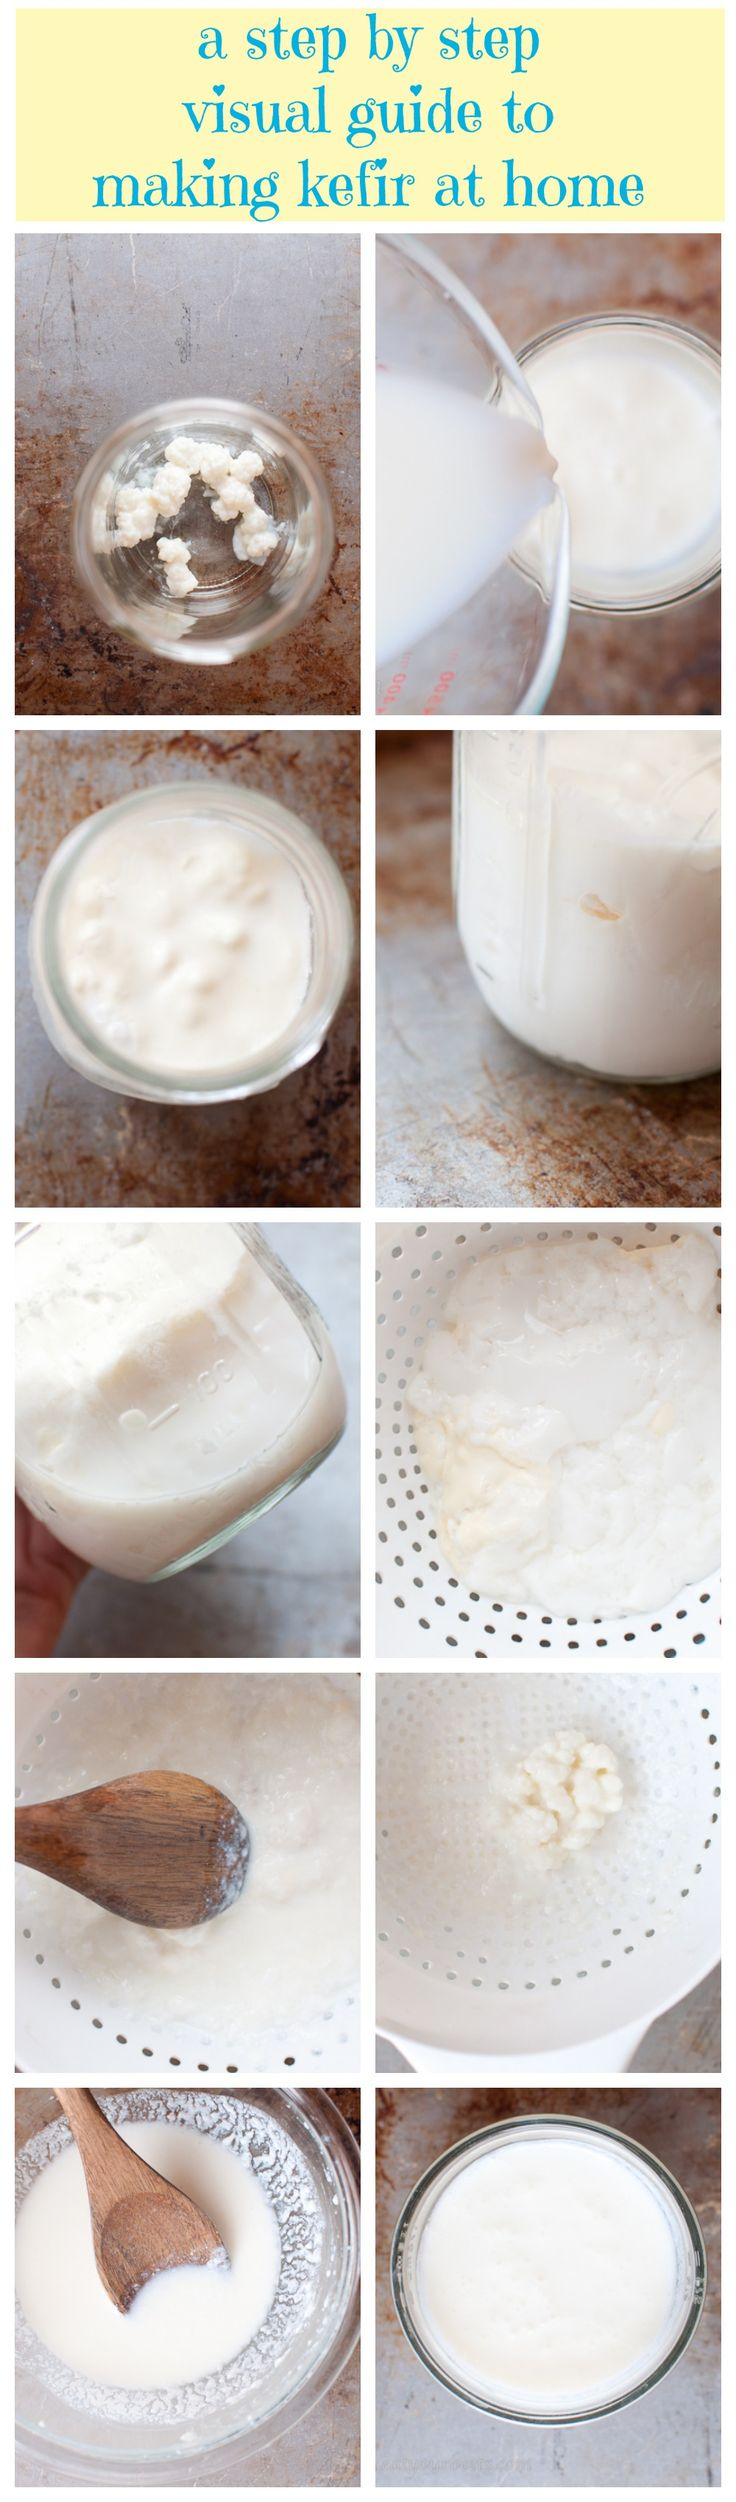 A Step by Step Guide to Making Kefir in Pictures | #kefir #rawmilk